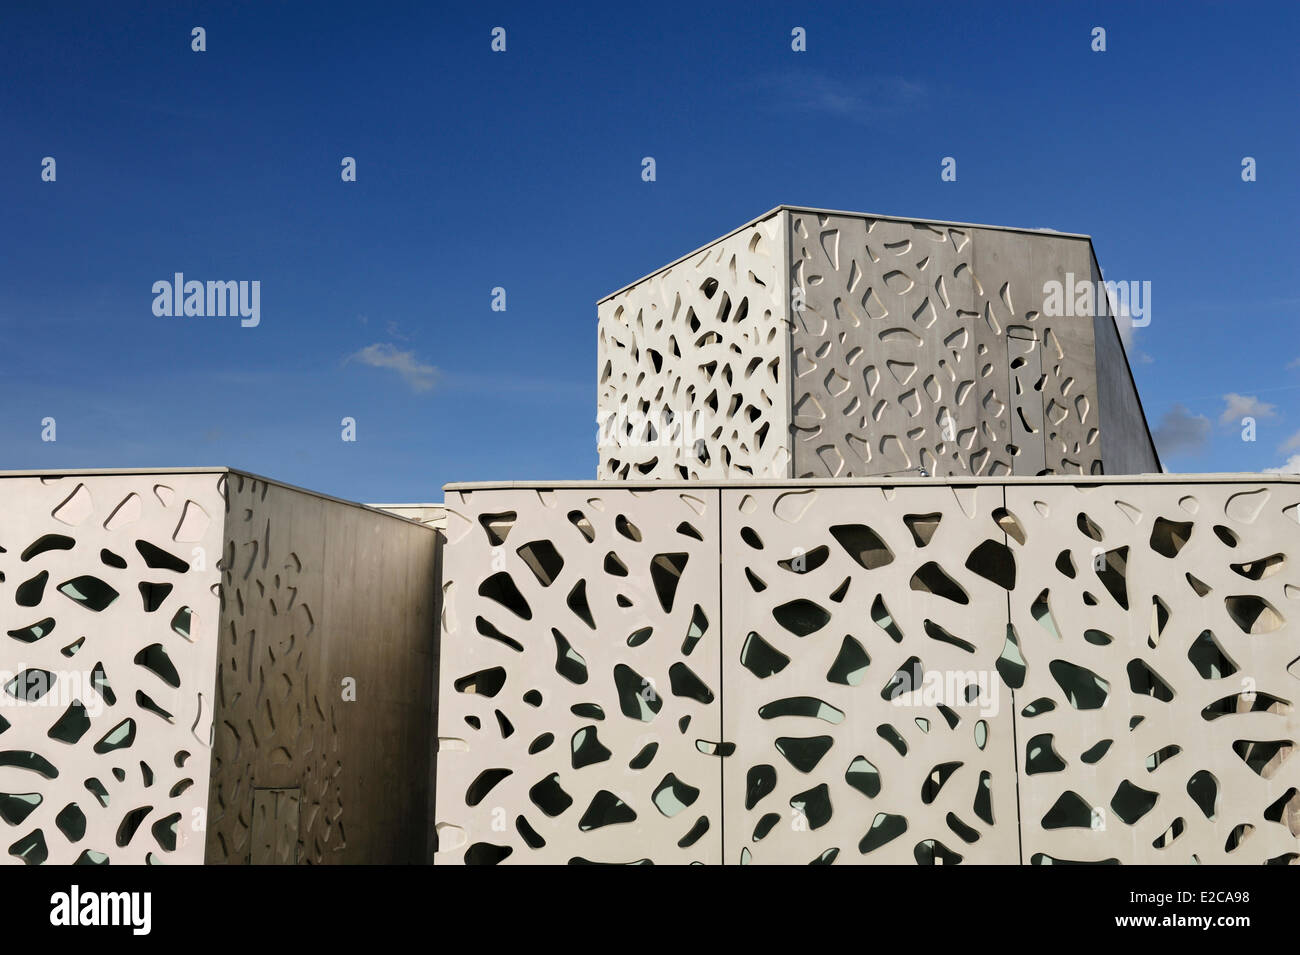 France, Nord, Villeneuve d'Ascq, LAM (Lille Metropole Museum of Modern Art, contemporary art and art brut), - Stock Image